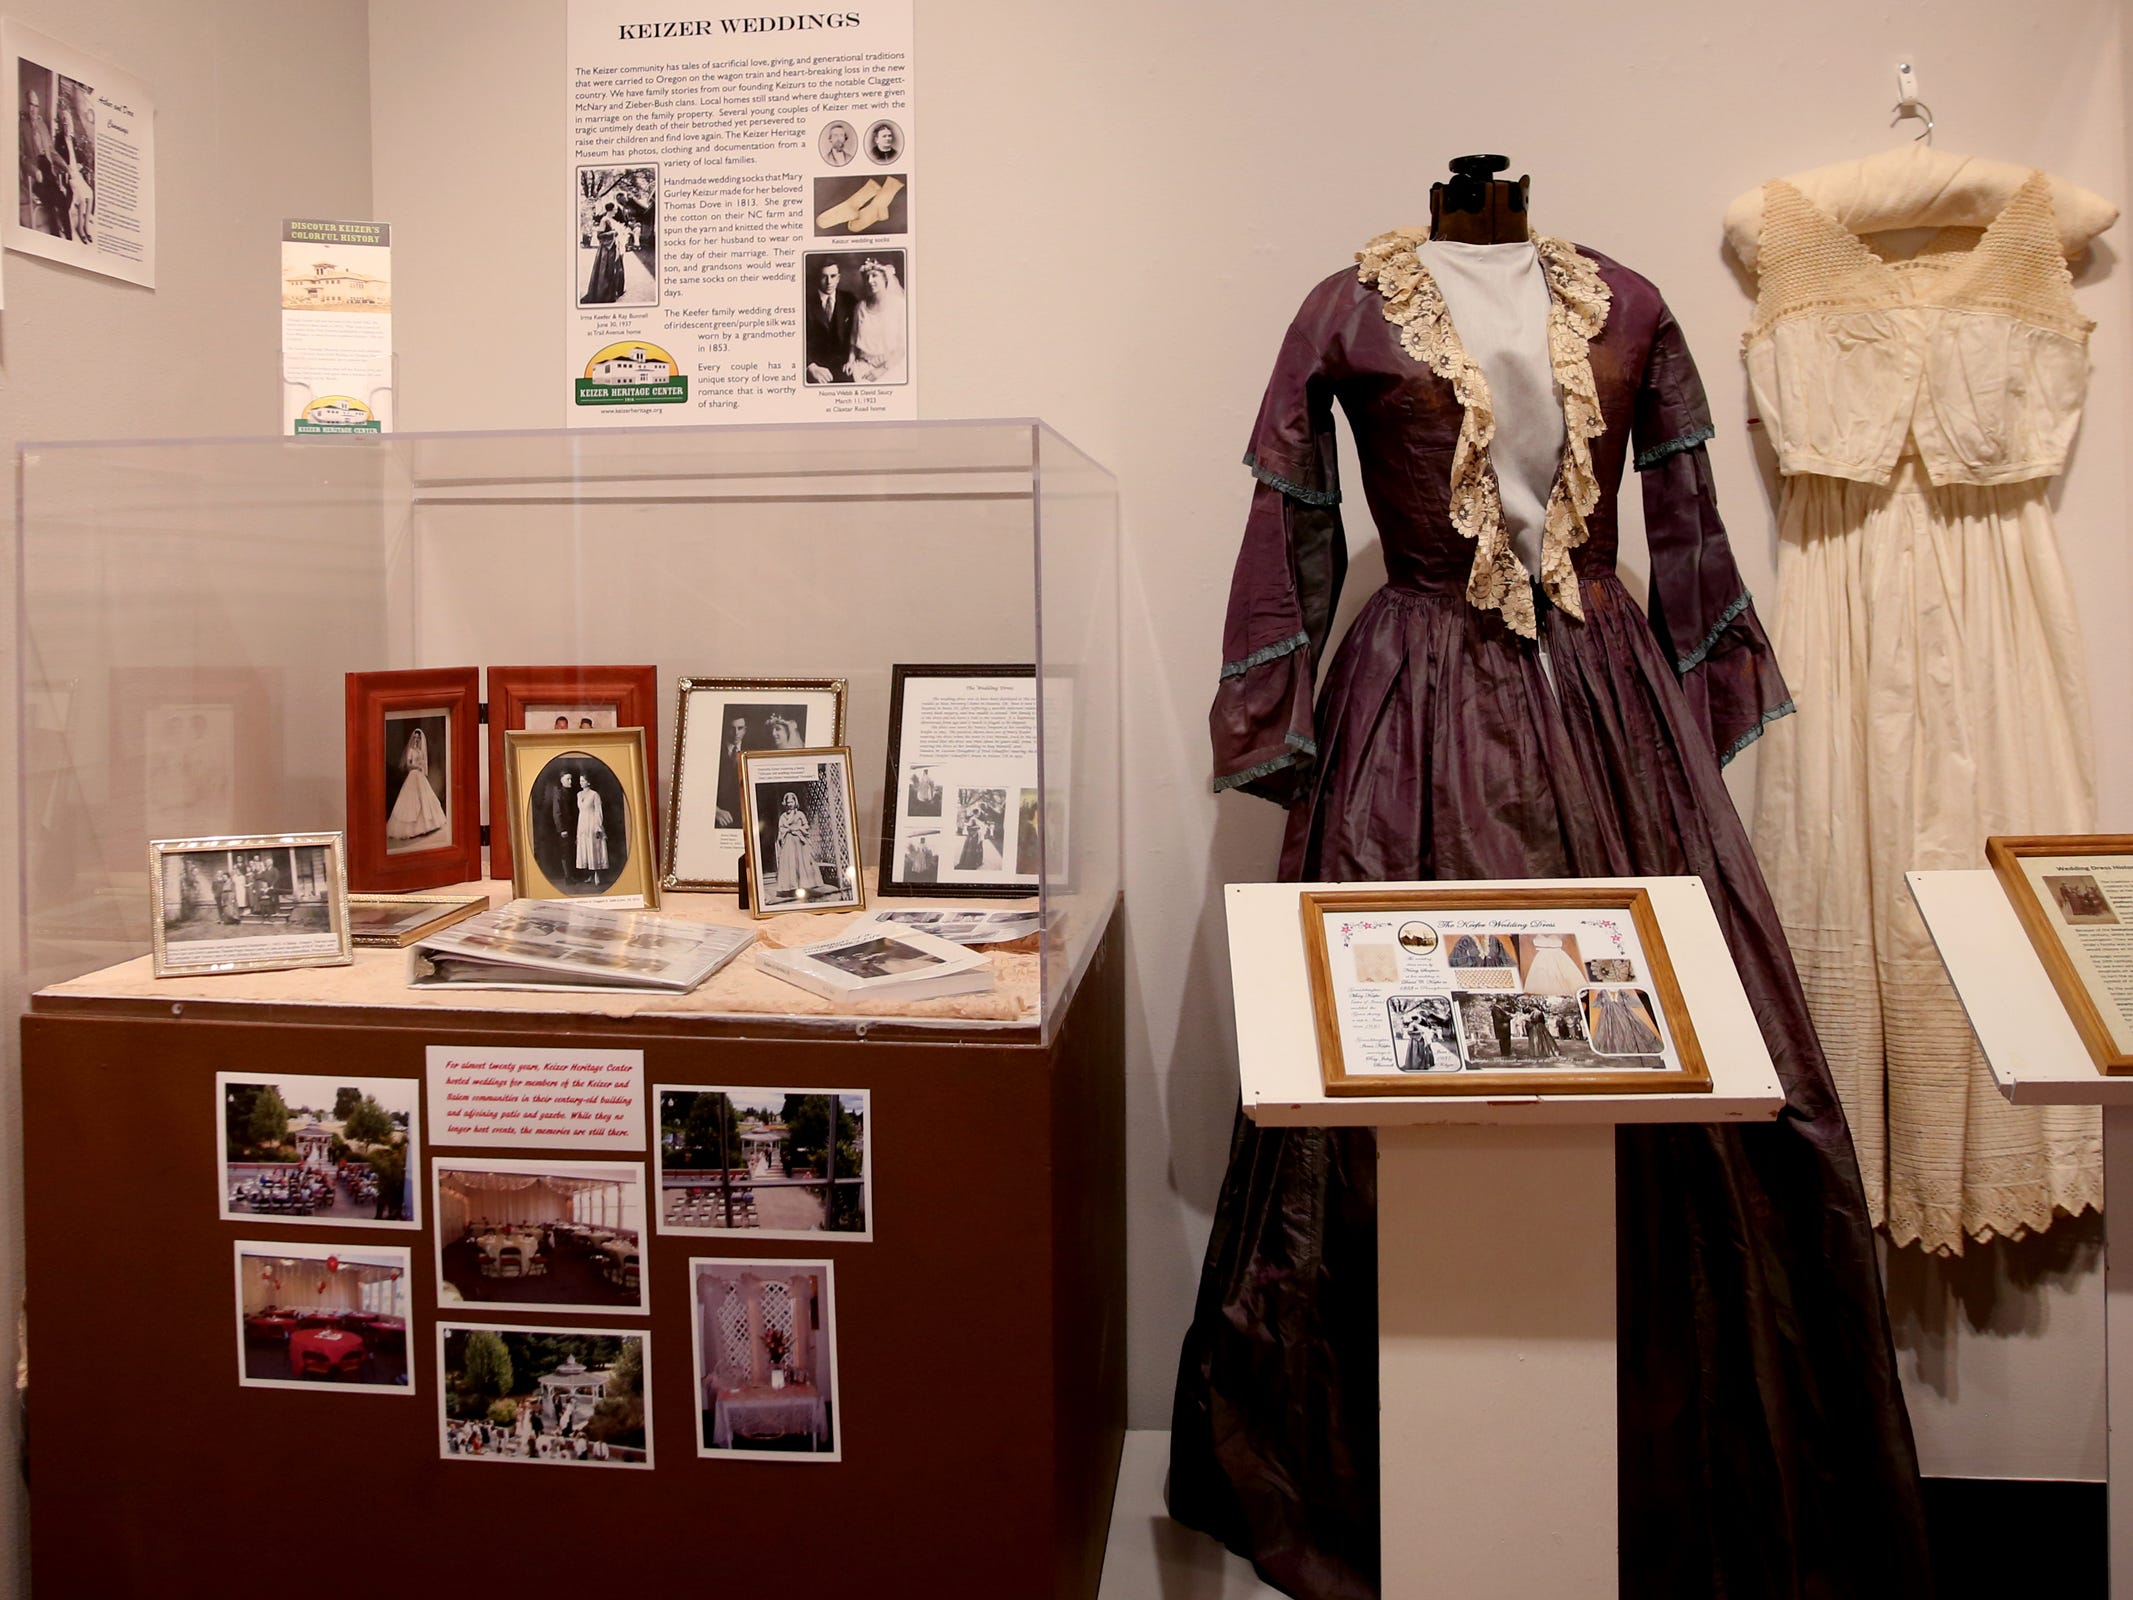 Historical wedding clothing and photos from the Keizer Heritage Center, part of the Romance: Stories of Love and Passion in the Mid-Willamette Valley exhibit running through April 20 at the Willamette Heritage Center in Salem on Thursday, Jan. 31, 2019.